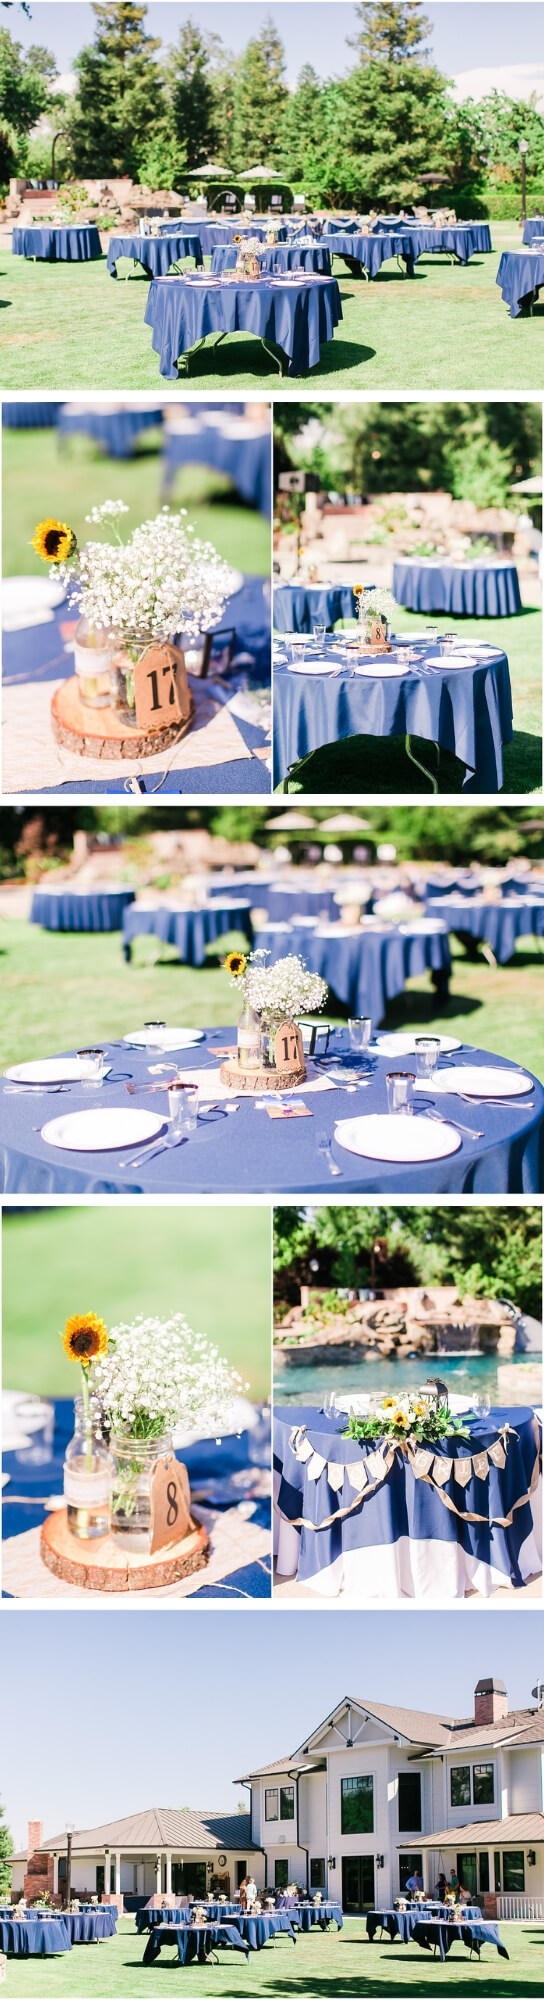 Backyard wedding decor | Creative & Rustic Backyard Wedding Ideas For Summer & Fall